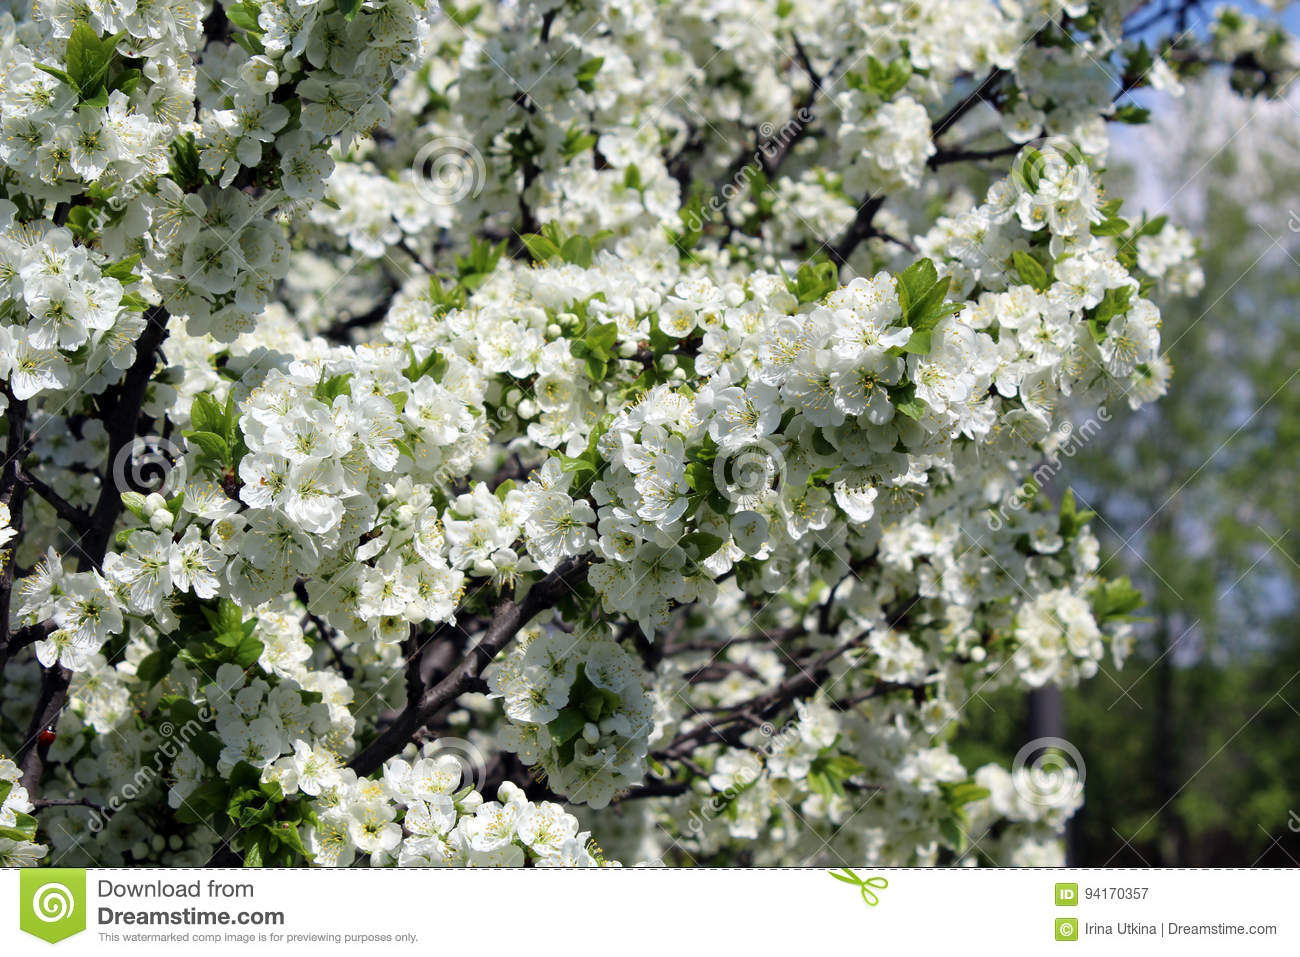 Blooming cherry tree stock image image of white bloom 94170357 download blooming cherry tree stock image image of white bloom 94170357 mightylinksfo